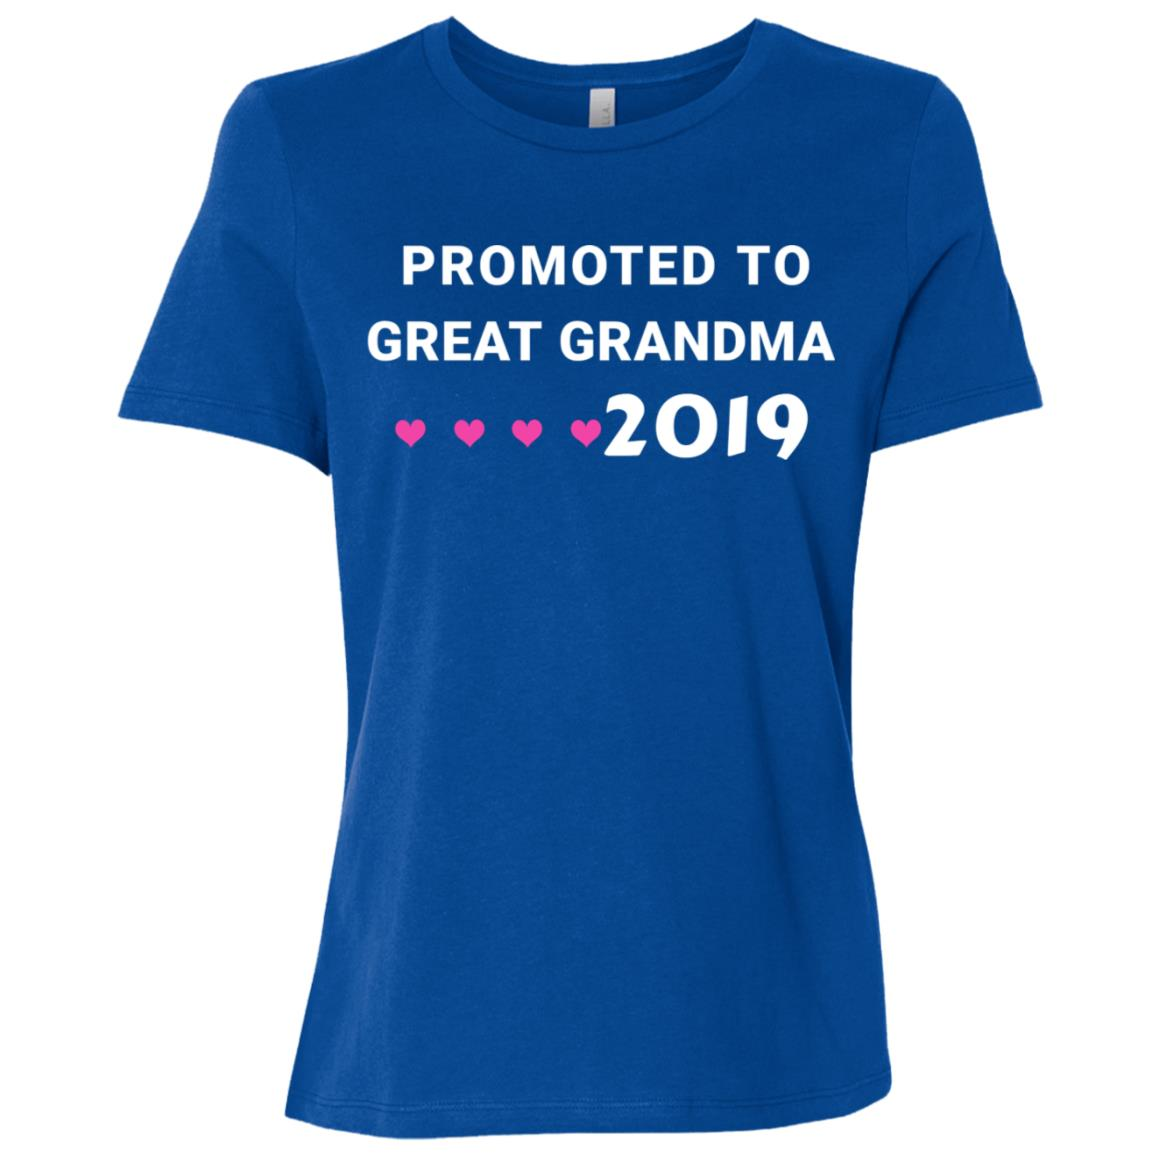 Promoted To Great Grandma 2019 Gifts For New Grandma-1 Women Short Sleeve T-Shirt